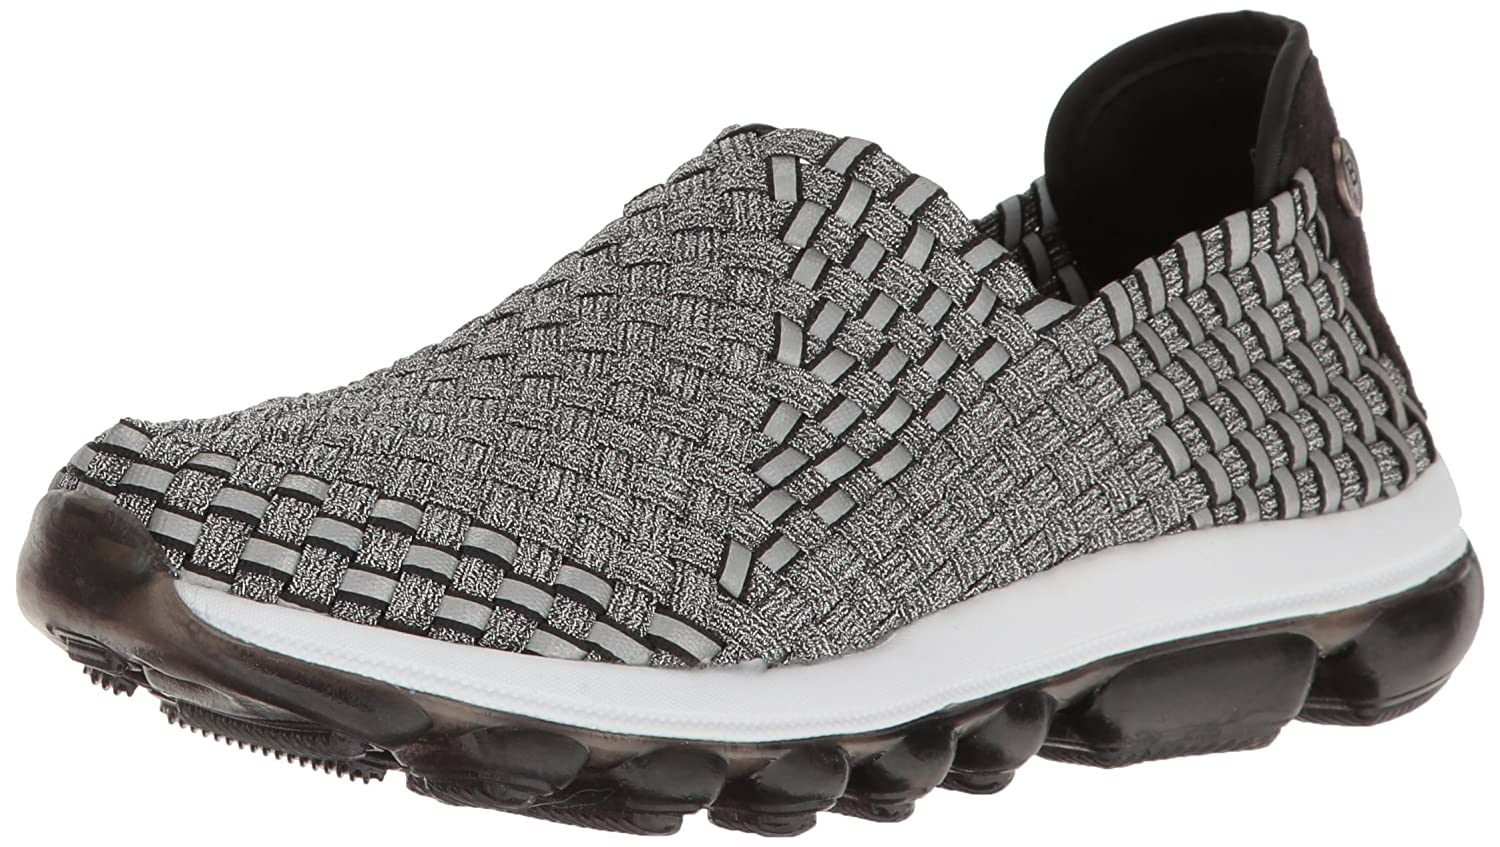 Bernie Mev Women's Gummies Gem Flat B01EZ99GSI 40 EU/9.5-10 M US|Pewter Black Reflective